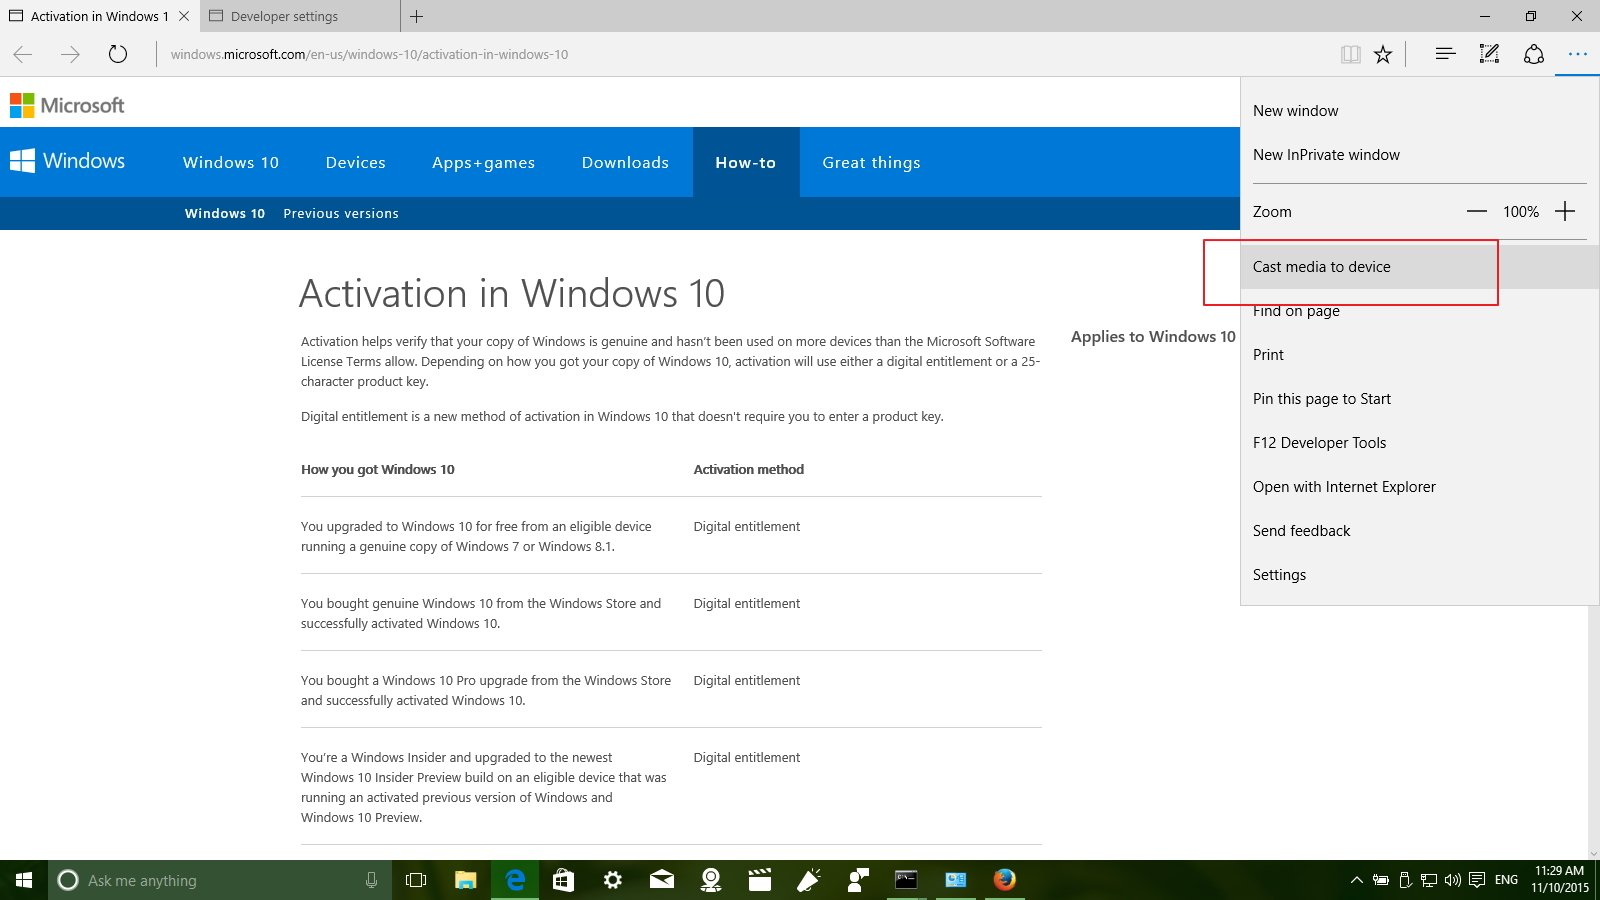 Online Calendar For Multiple Users Free Online Calendar For Webmaster School Family Windows 10 Fall Update Features Changes And